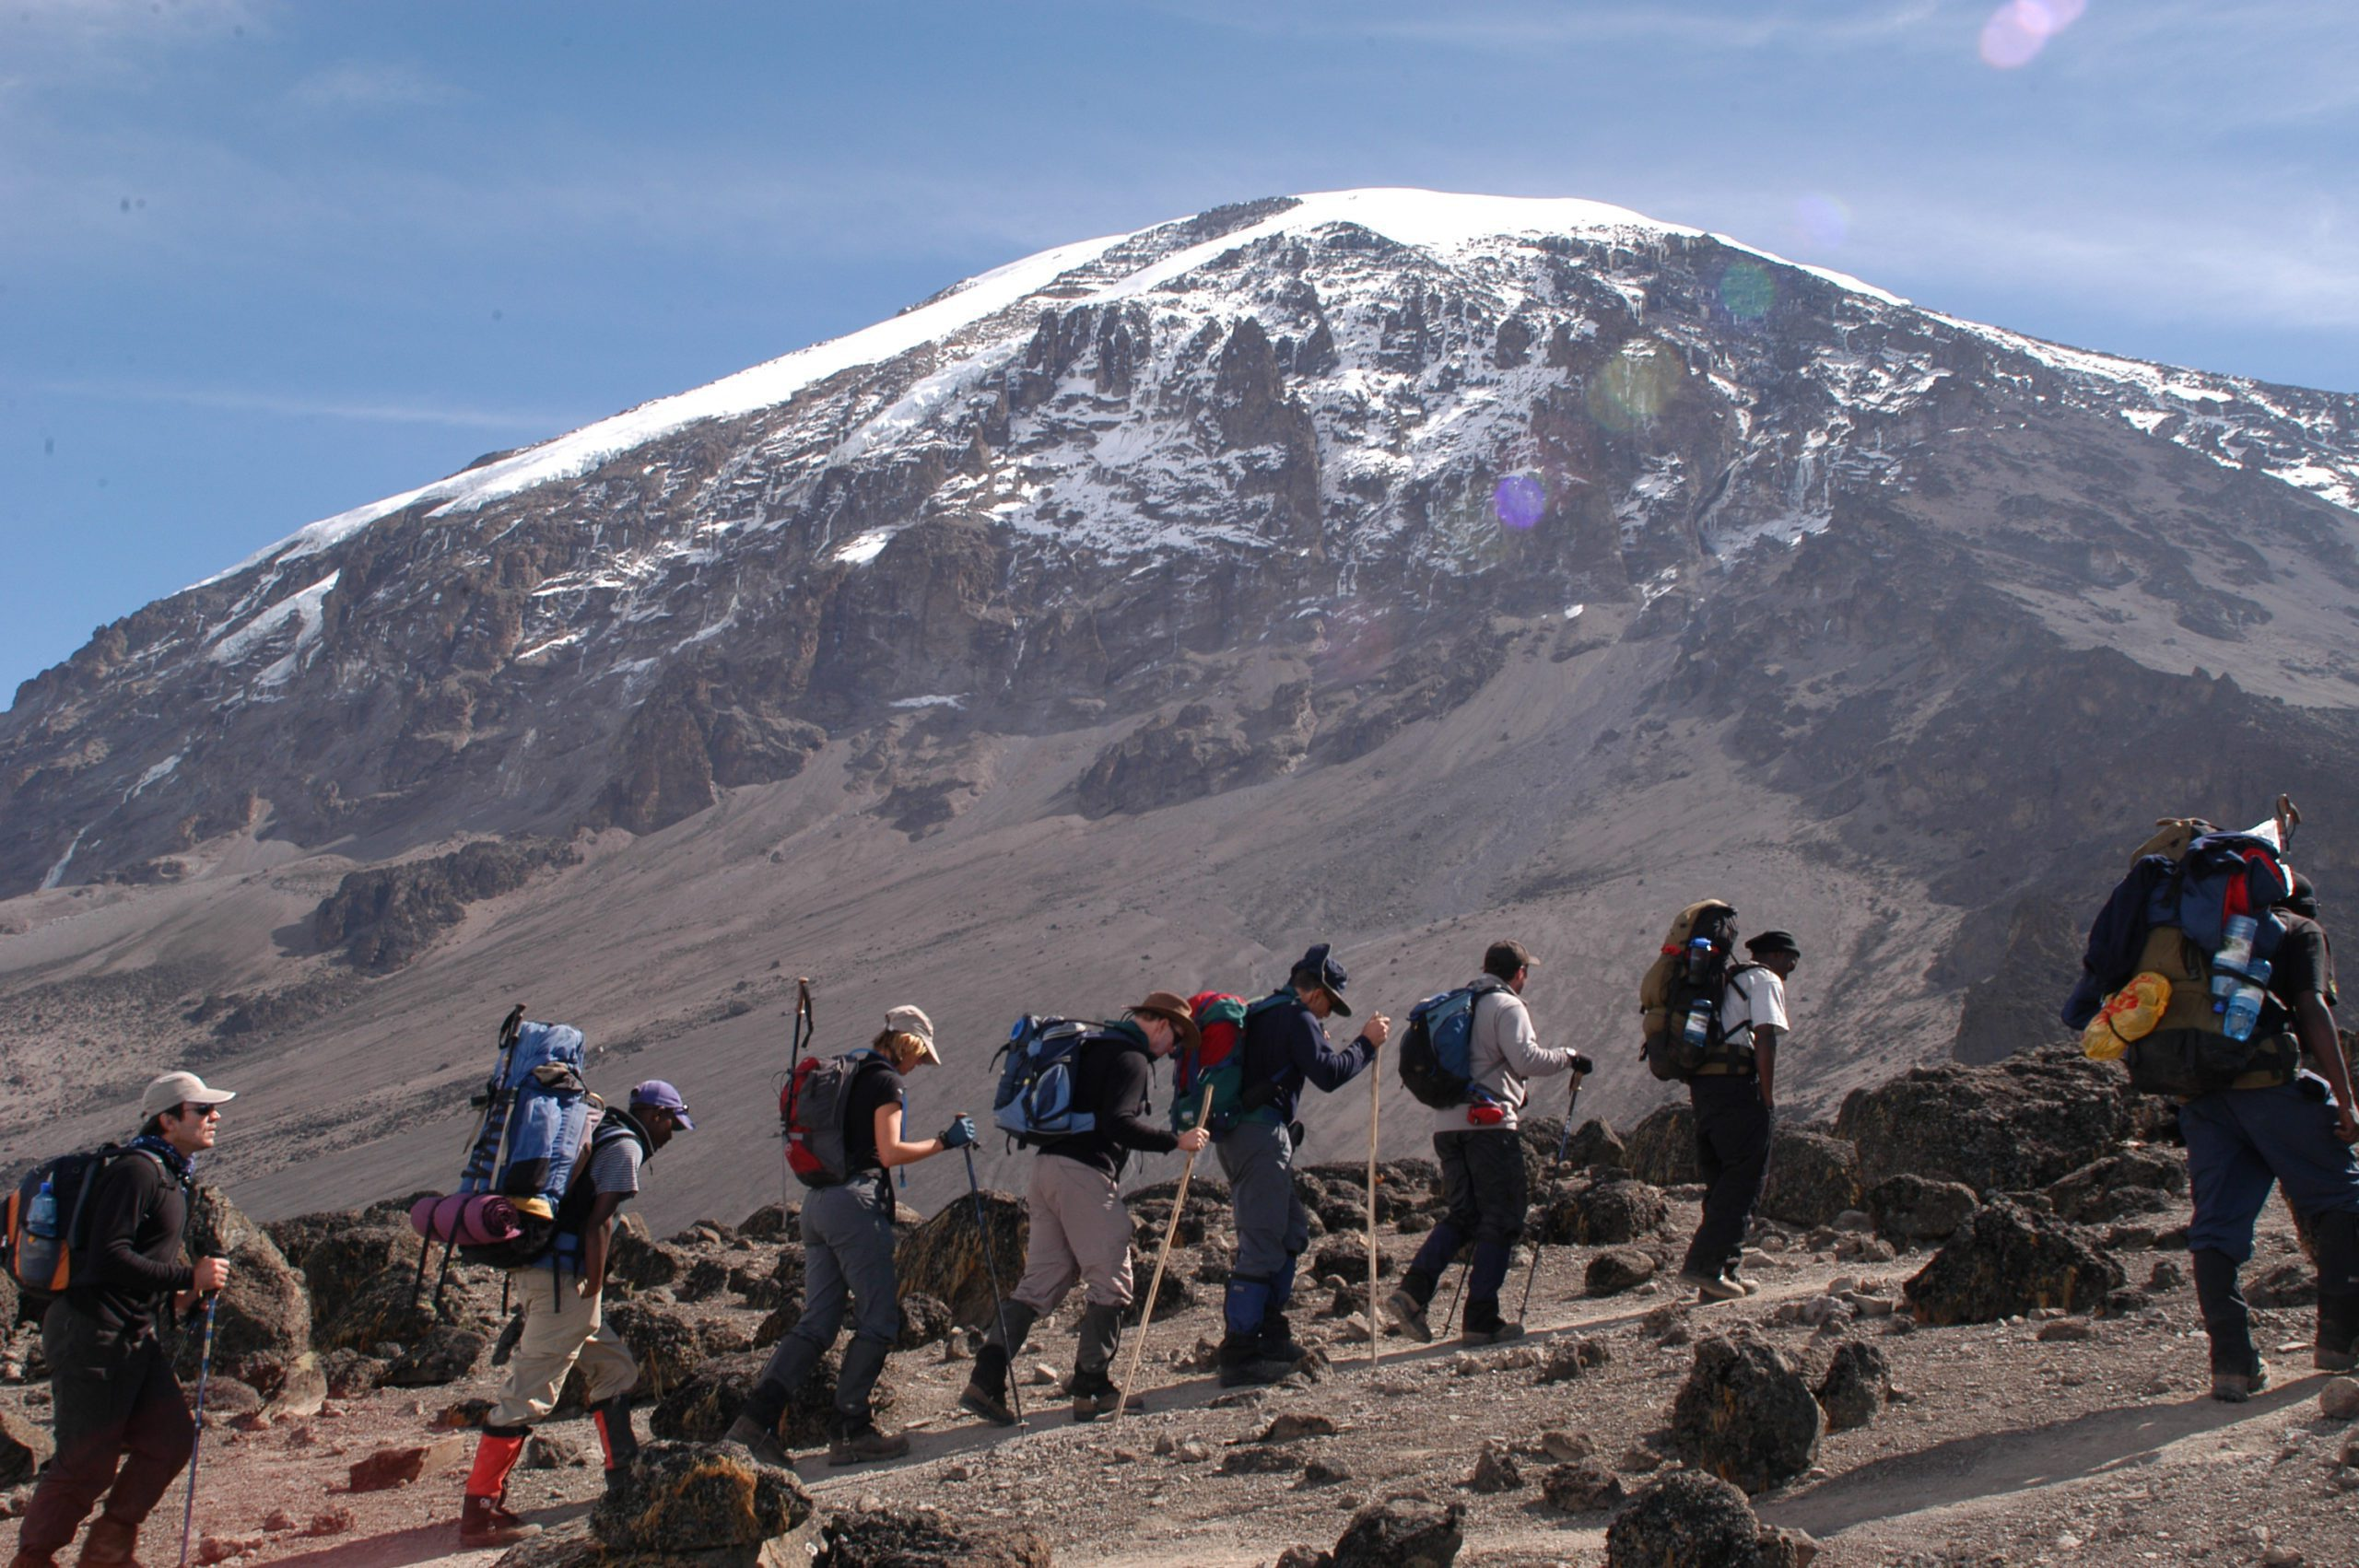 row of hikers with backpacks and walking sticks following the trail on Kilimanjaro with the snow-capped peak in the distance